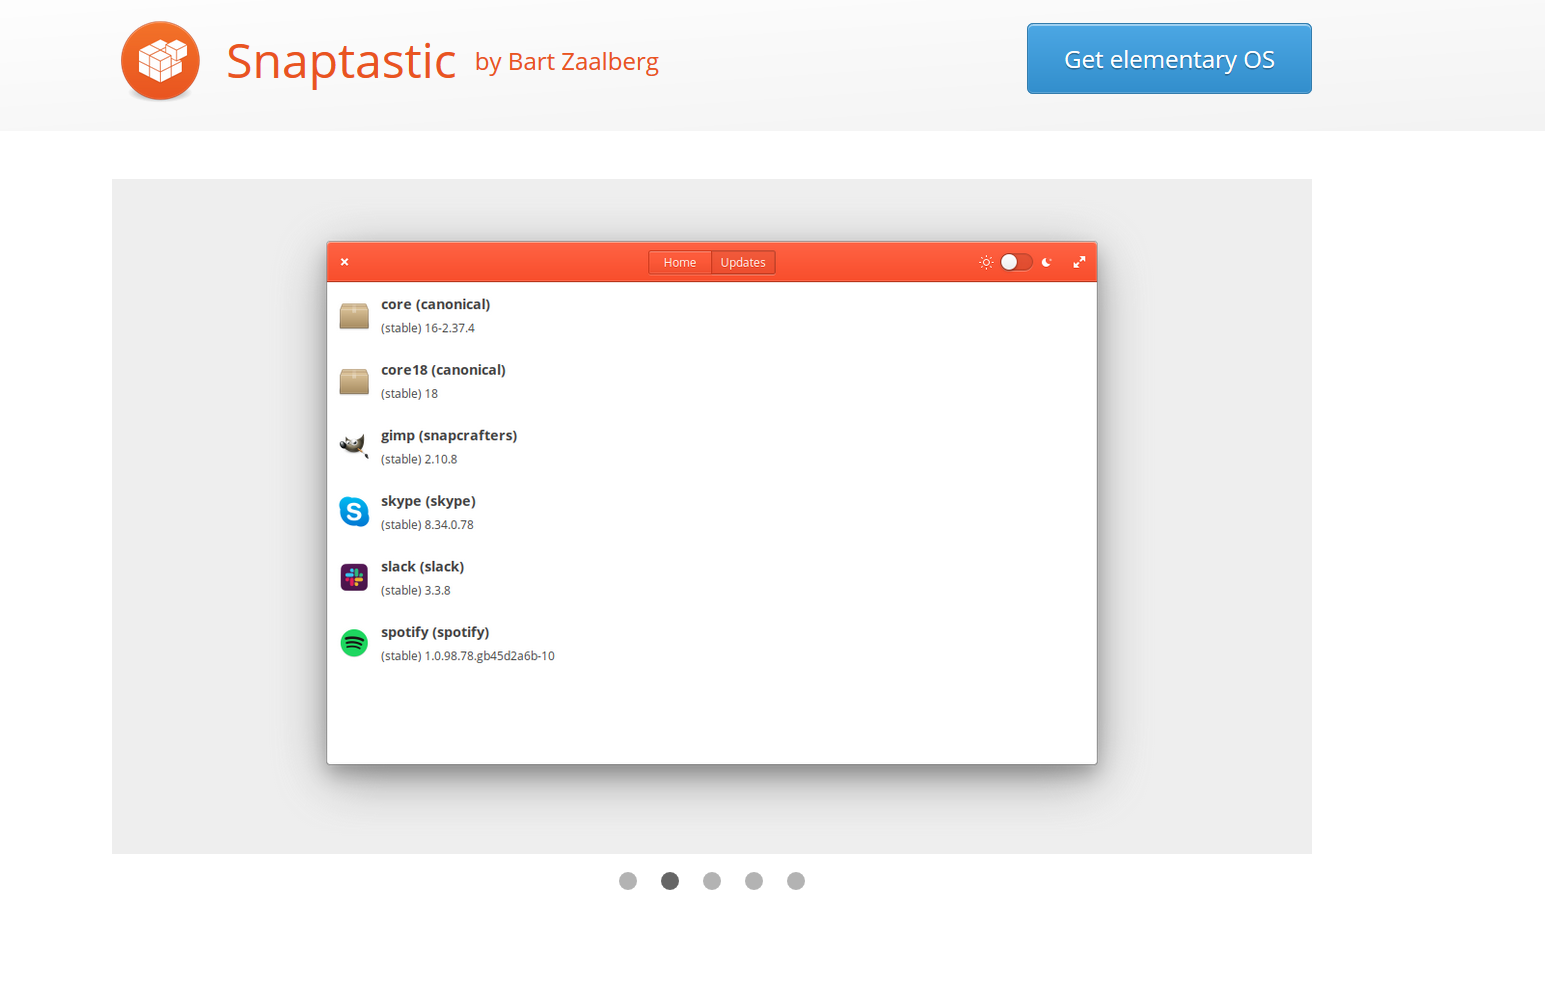 snaptastic snap app elementary os